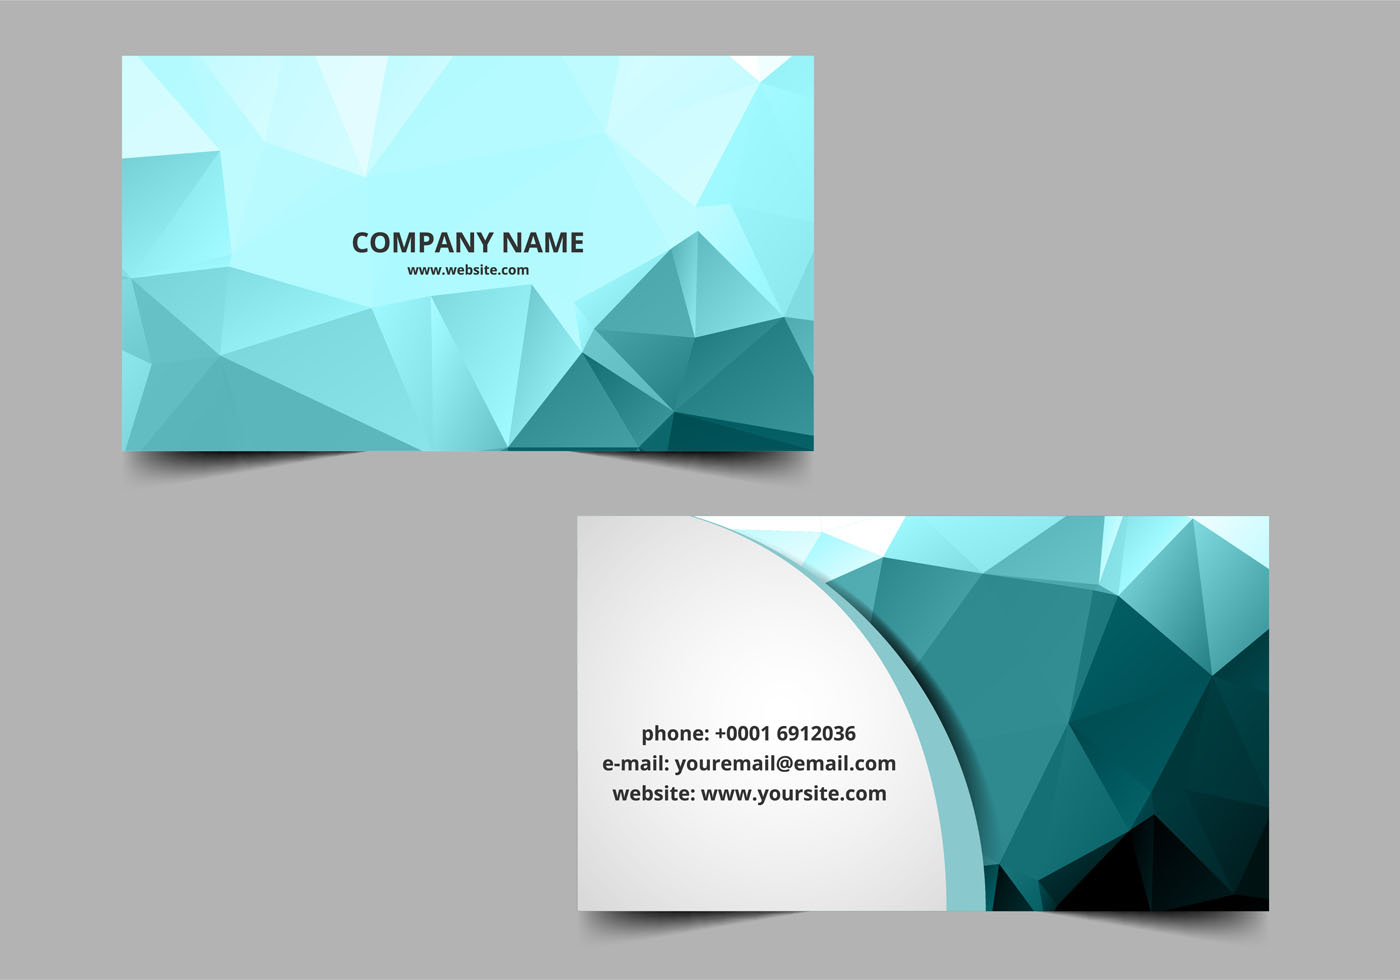 Banner Design Ideas Free Vector Polygon Visiting Card Download Free Vector